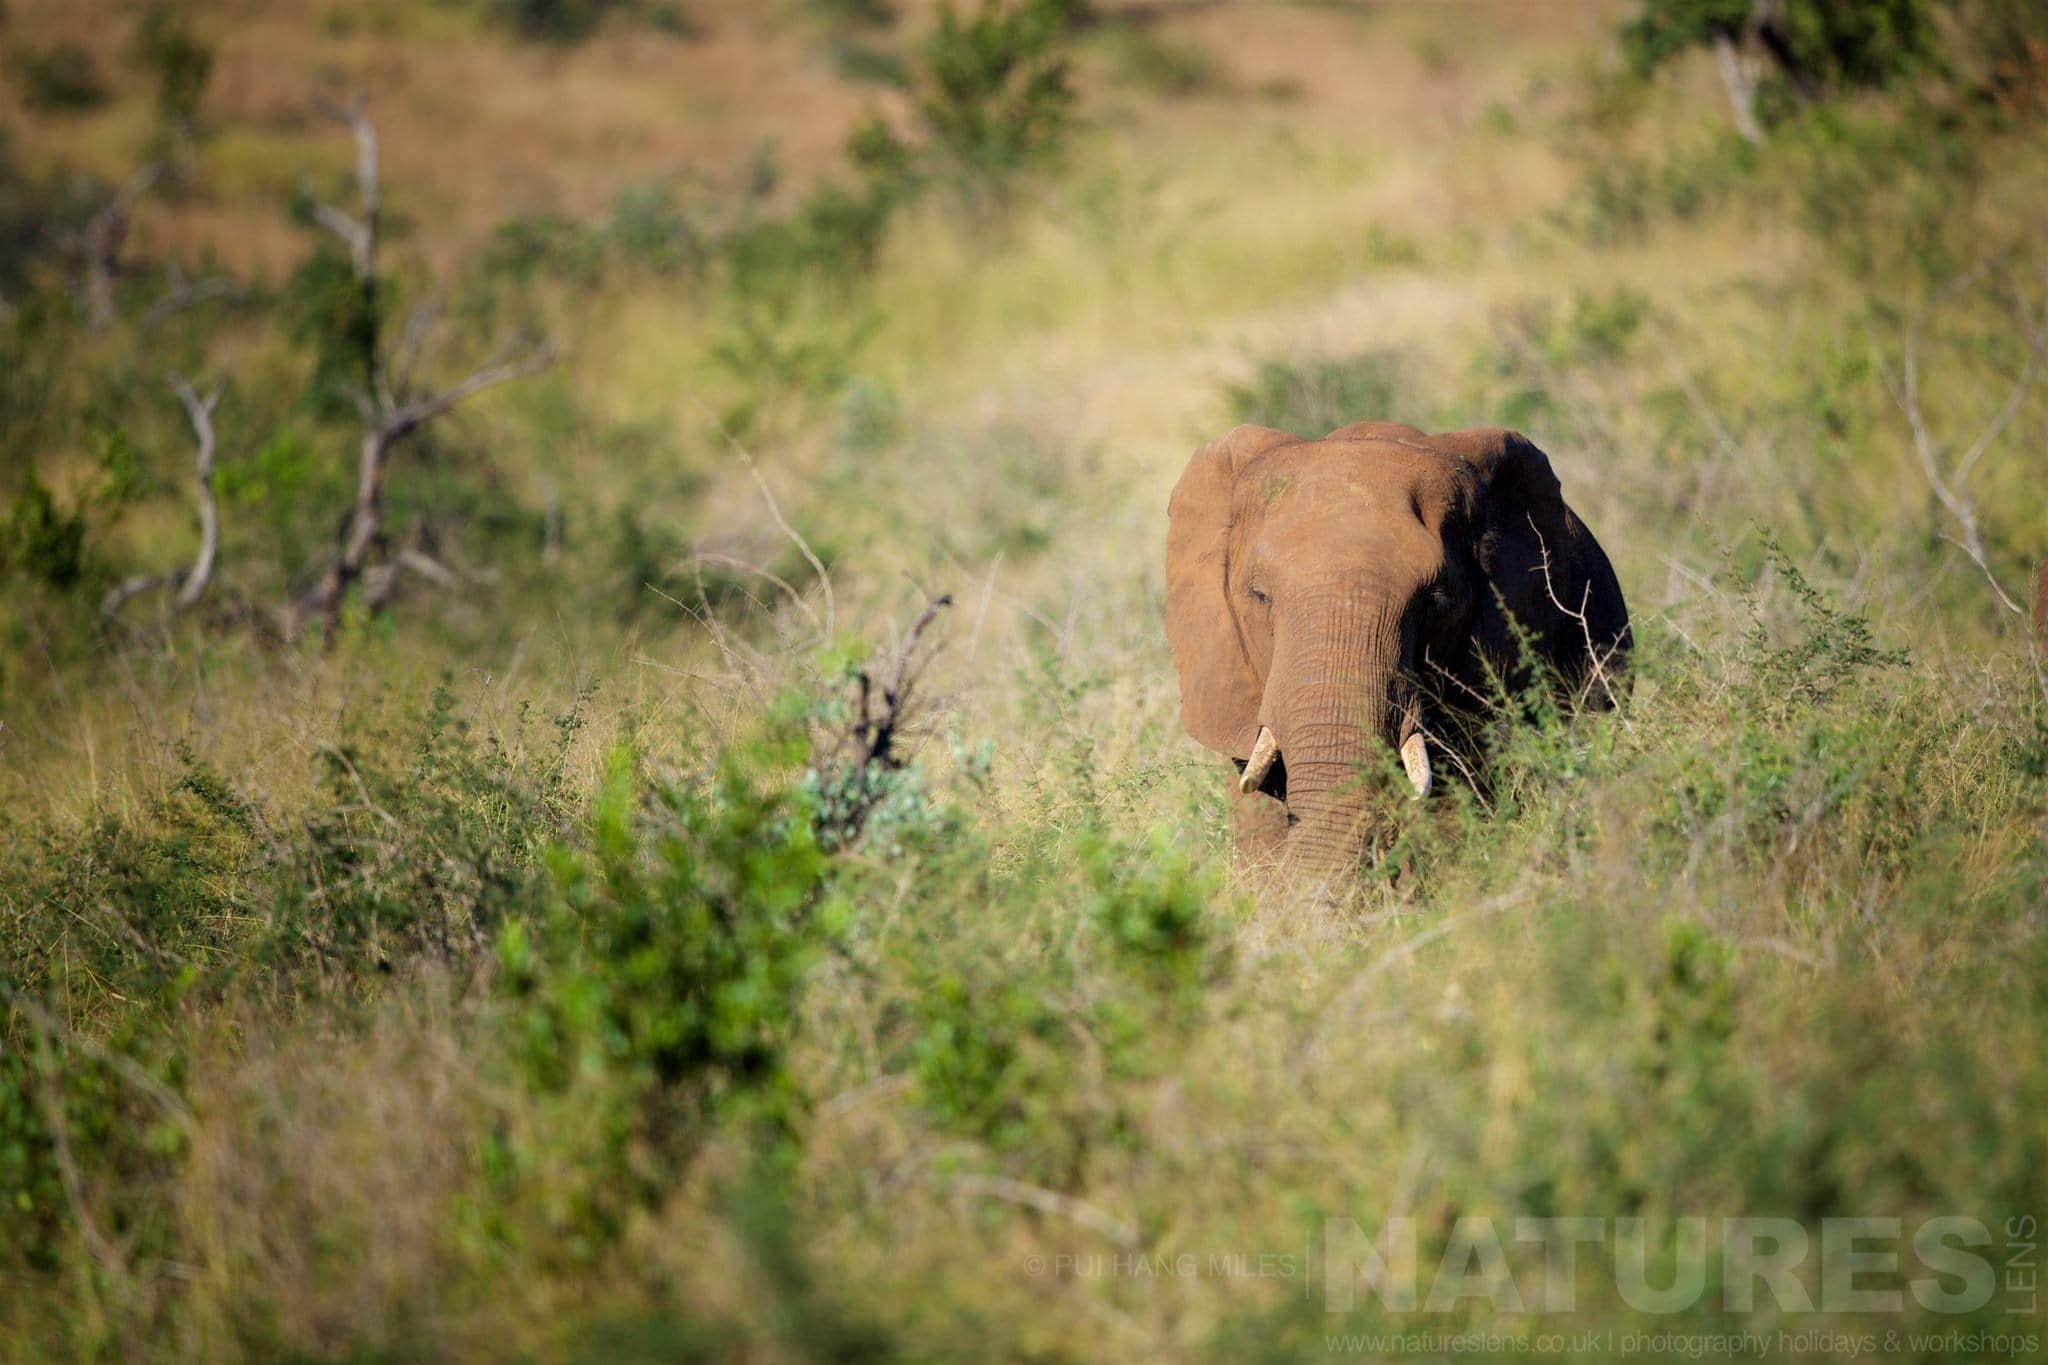 Elephant In Long Grass   Captured During The Natureslens African Wildlife Zimanga Photography Holiday